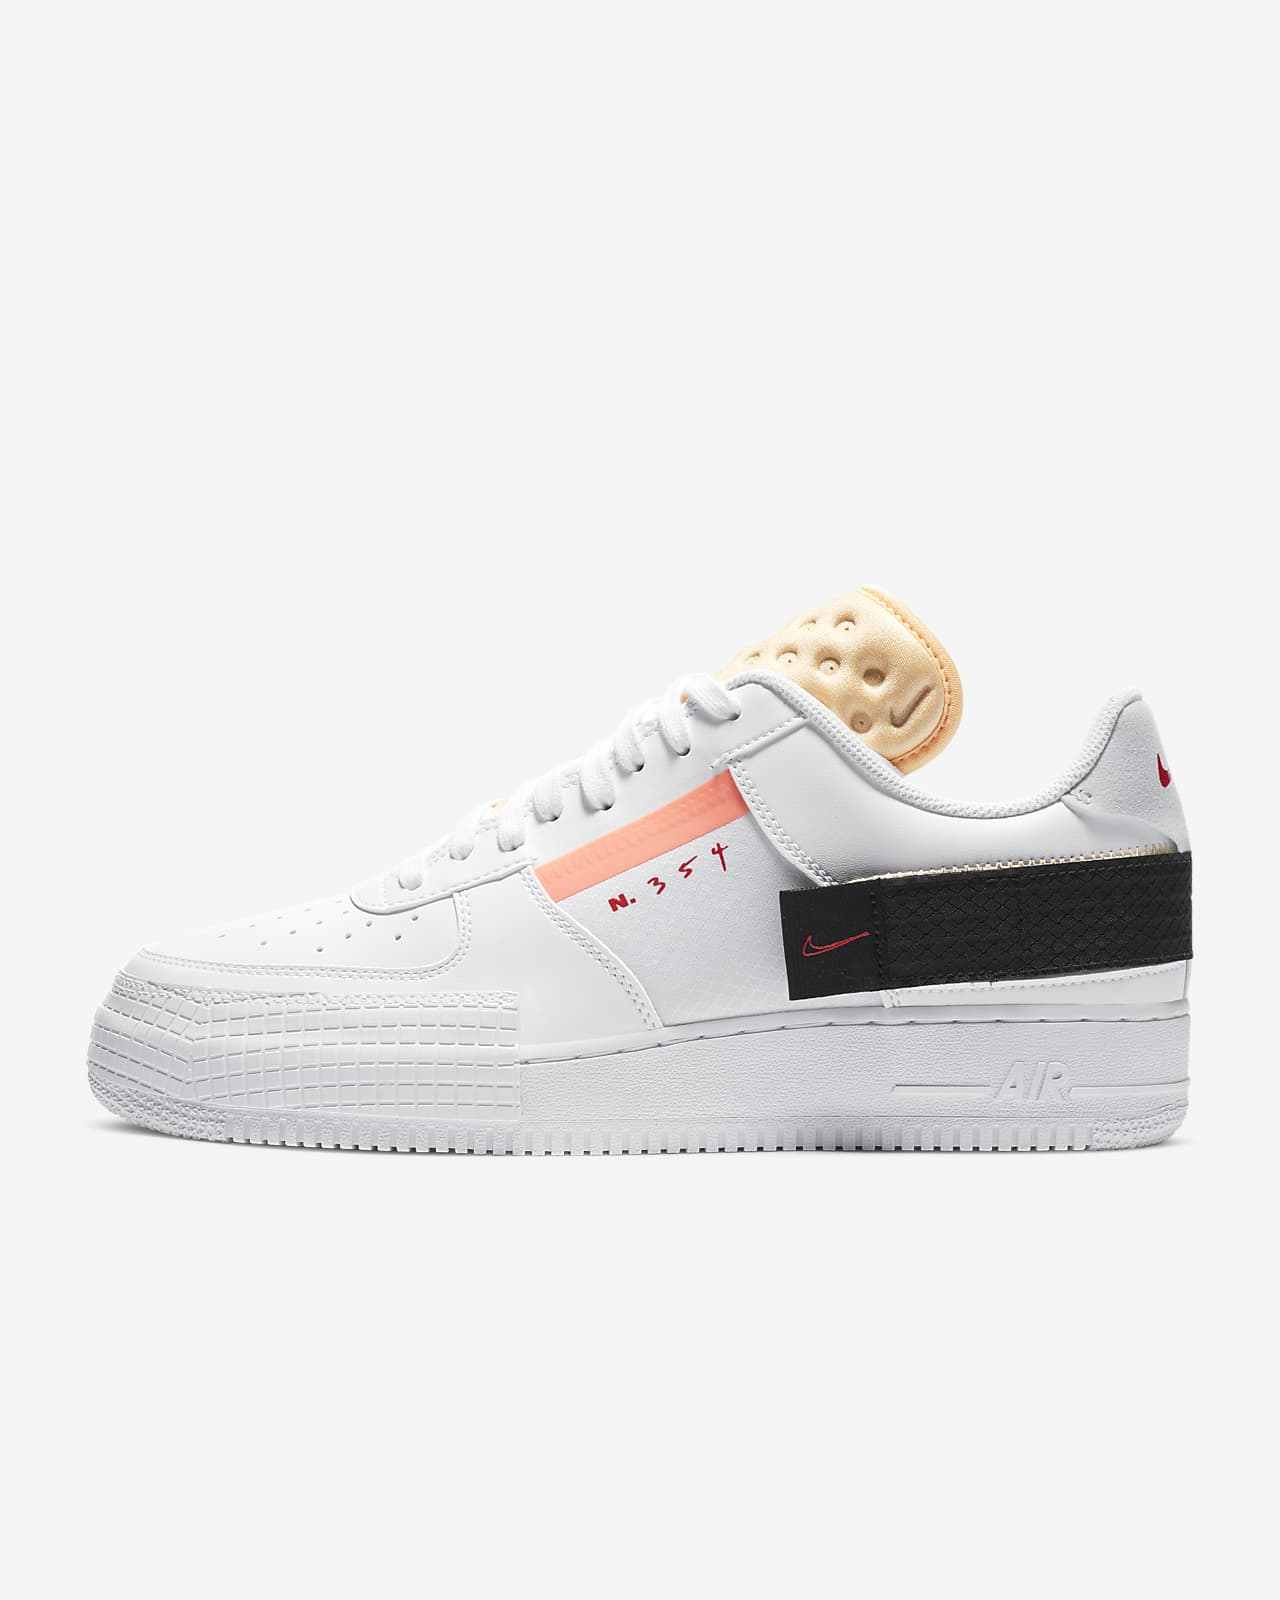 Chaussure Nike AF1-Type pour Homme